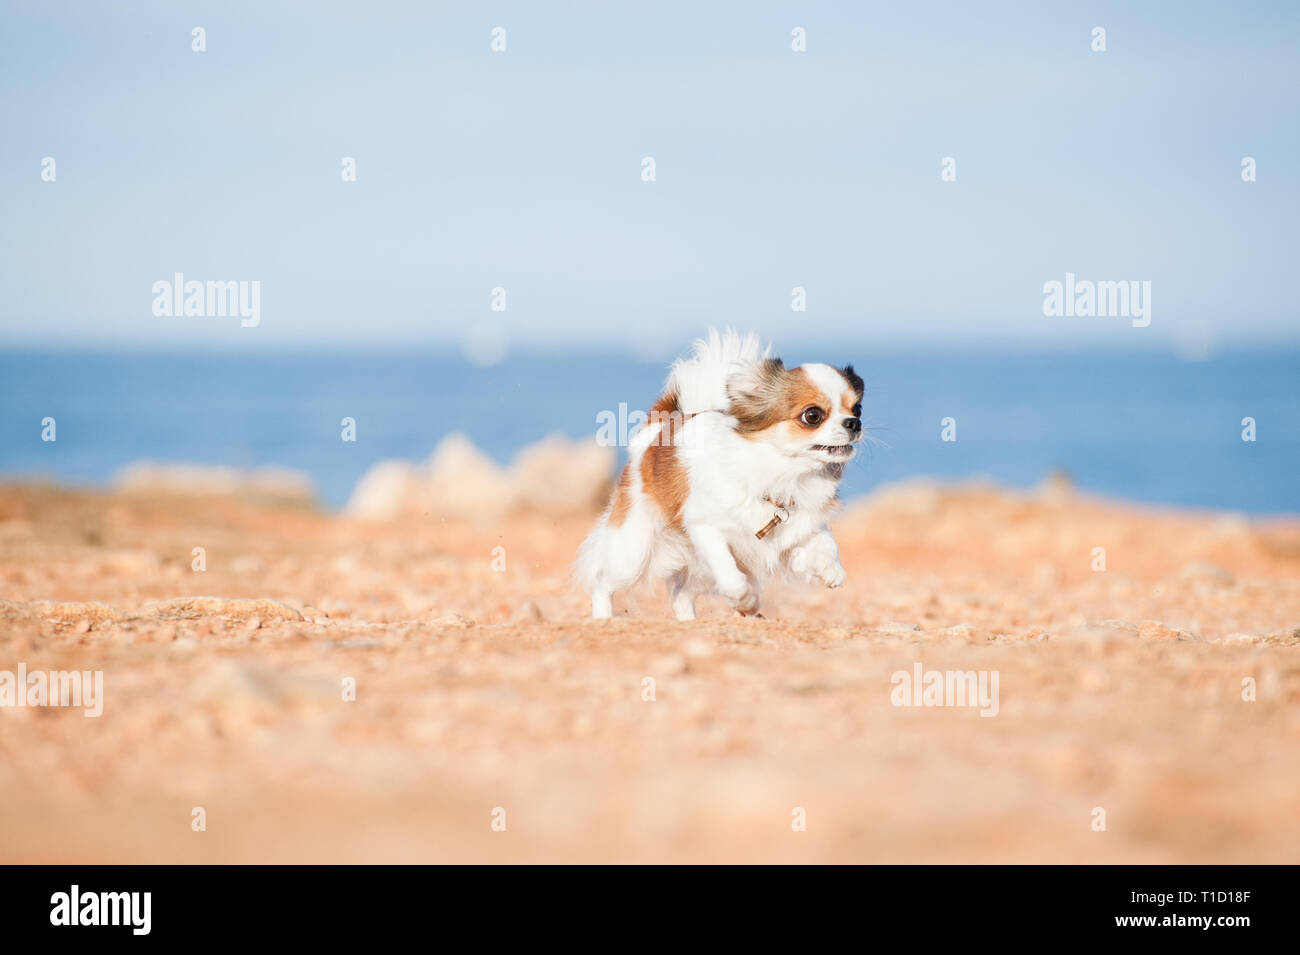 funny little chihuahua pet dog running fast on ground on sea background outdoor leisure - Stock Image